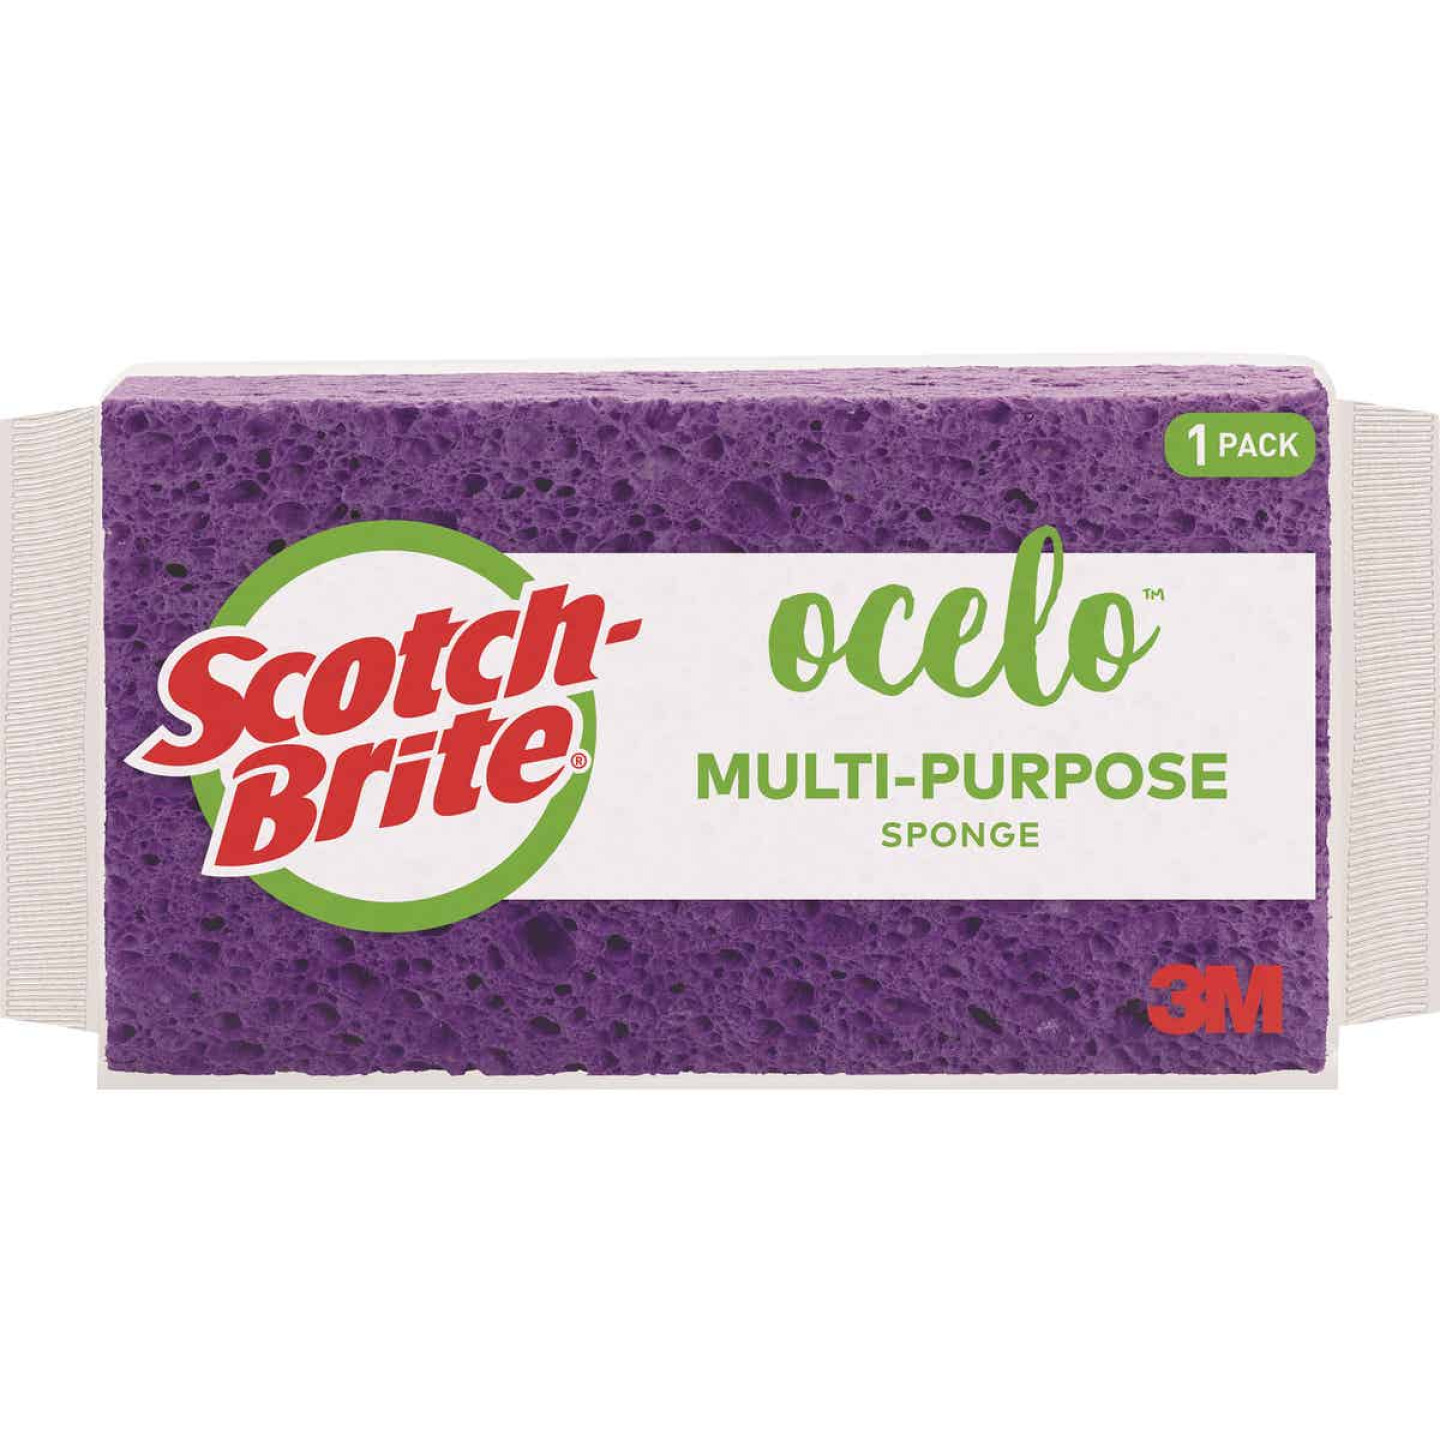 Scotch-Brite O-Cel-O 7.75 In. x 4.25 In. StayFresh Sponge Image 1